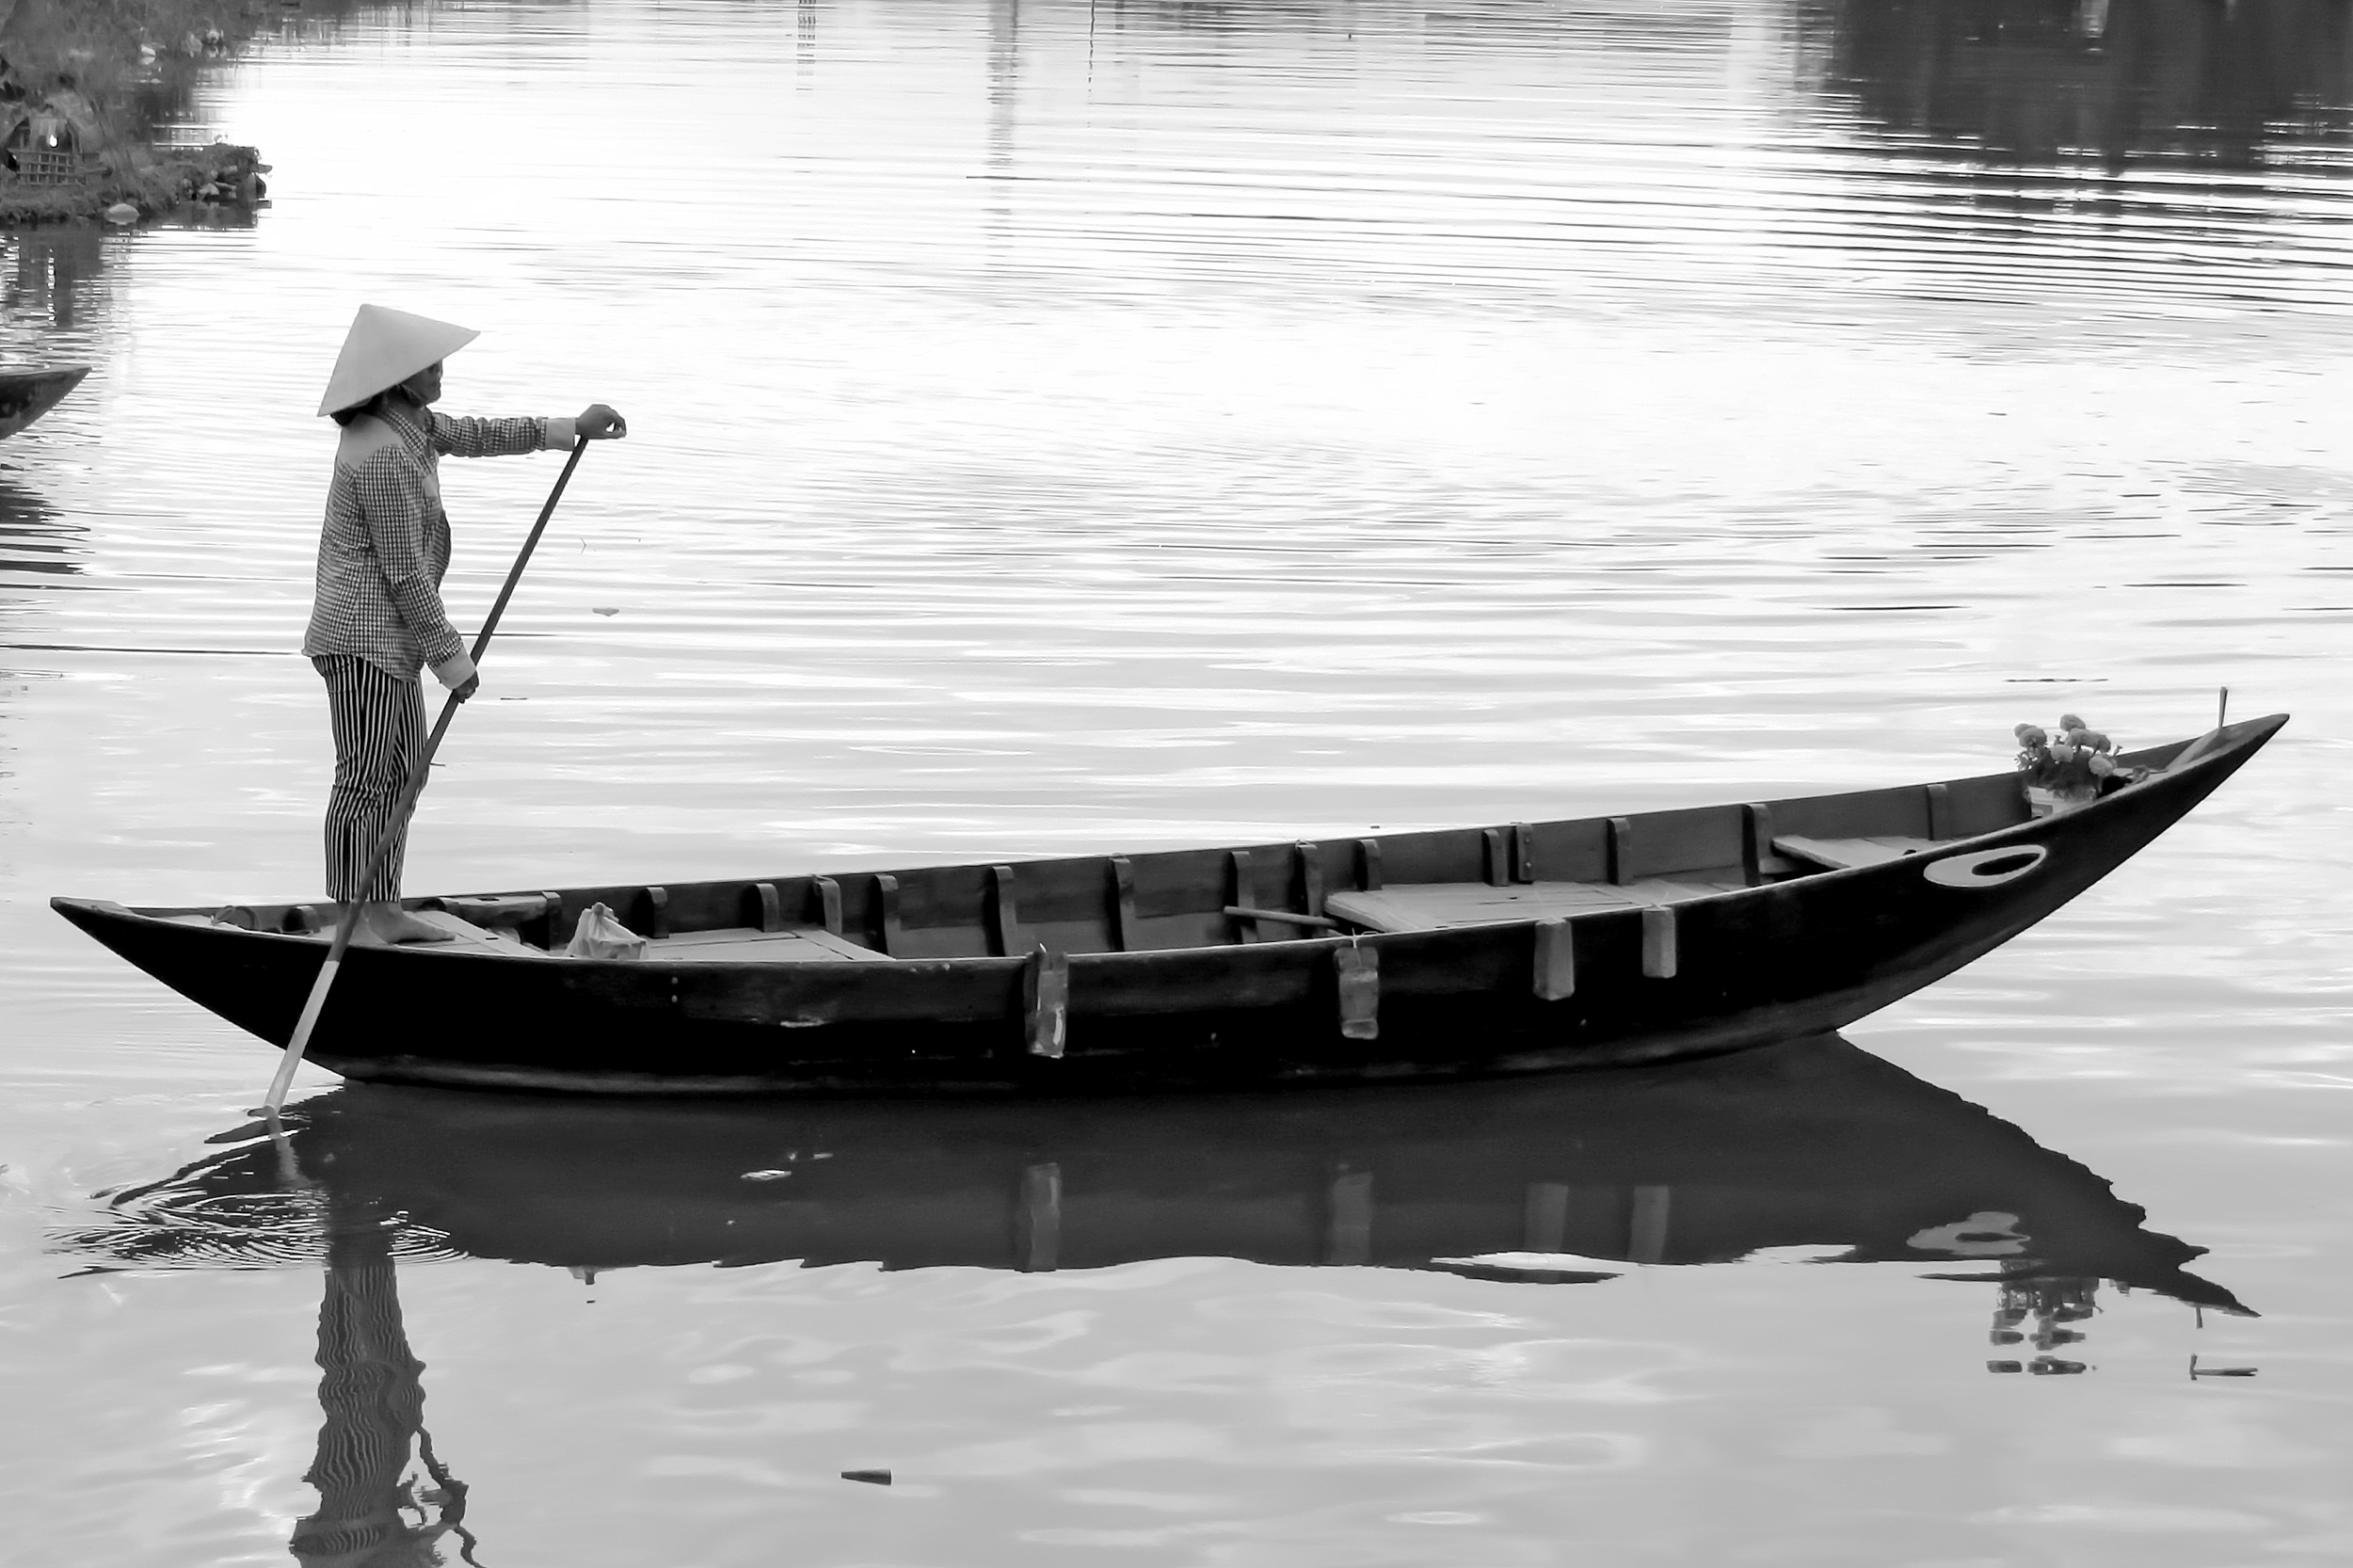 A woman punting a canoe